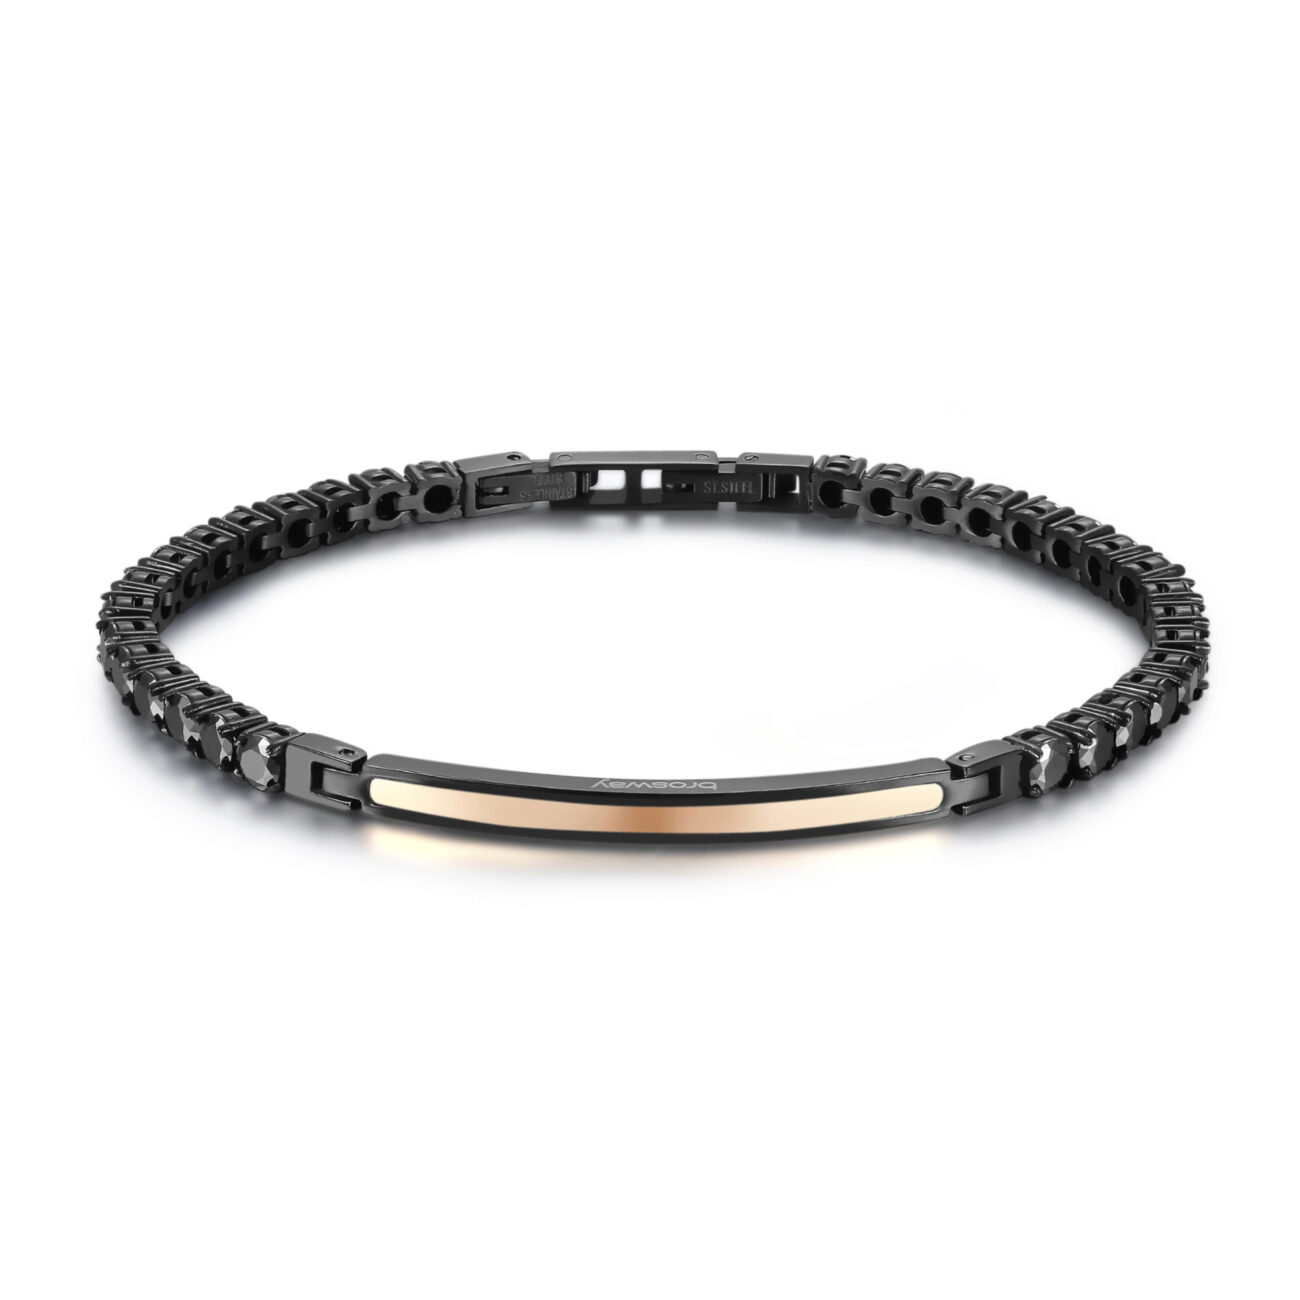 316L stainless steel bracelet, black pvd and rose gold pvd with black zircons.